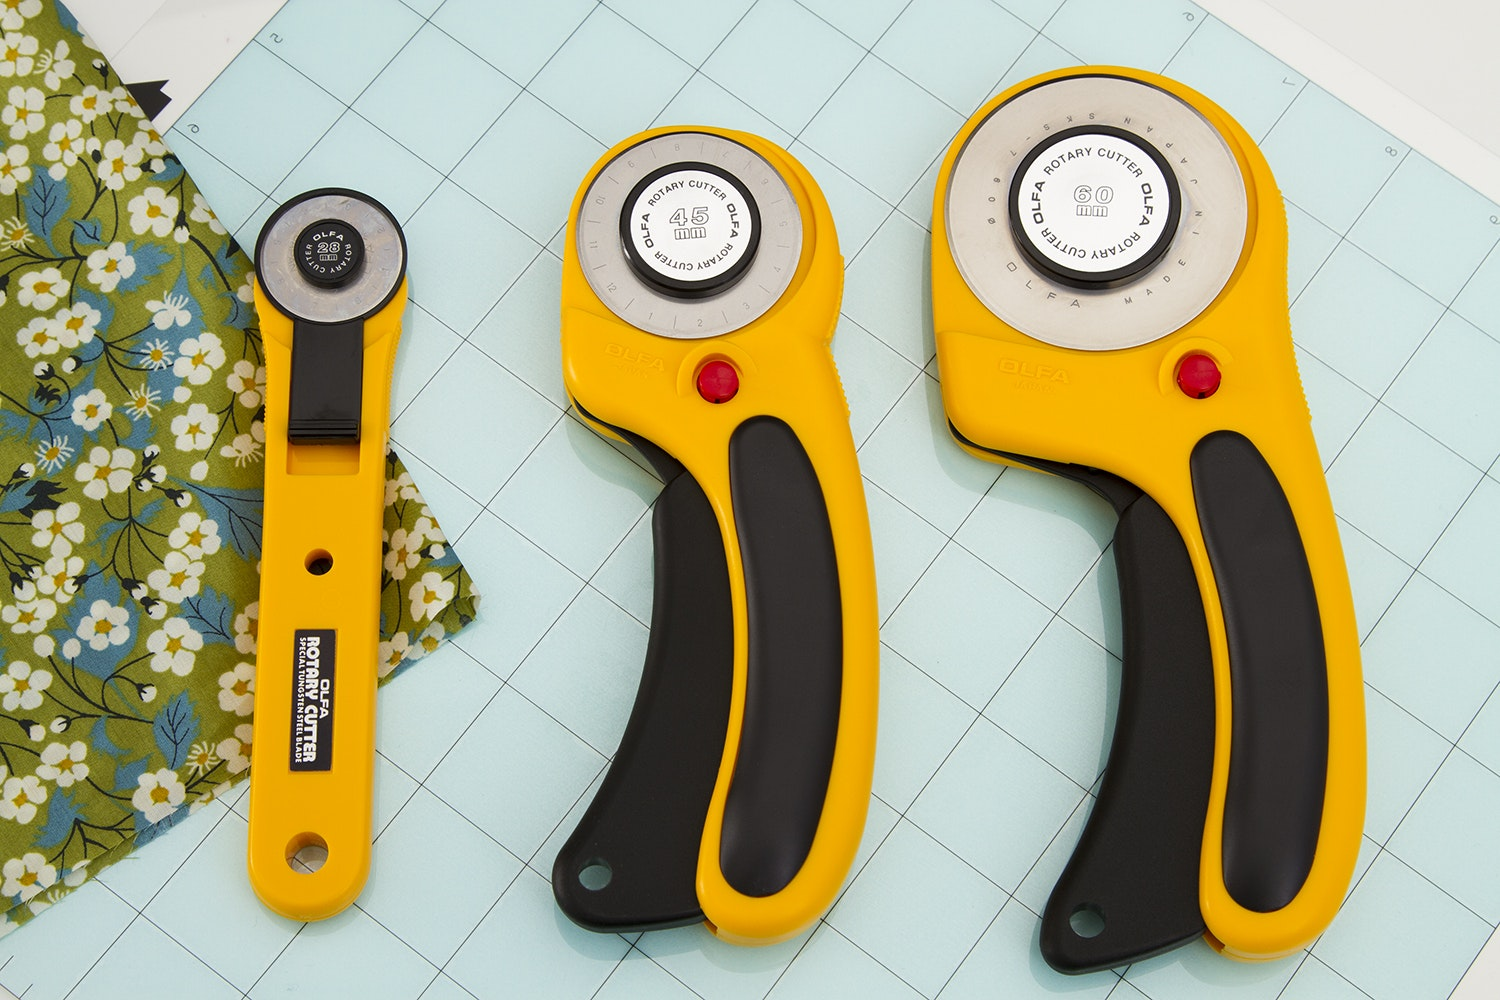 OLFA Deluxe Ergo Rotary Cutter + Blades